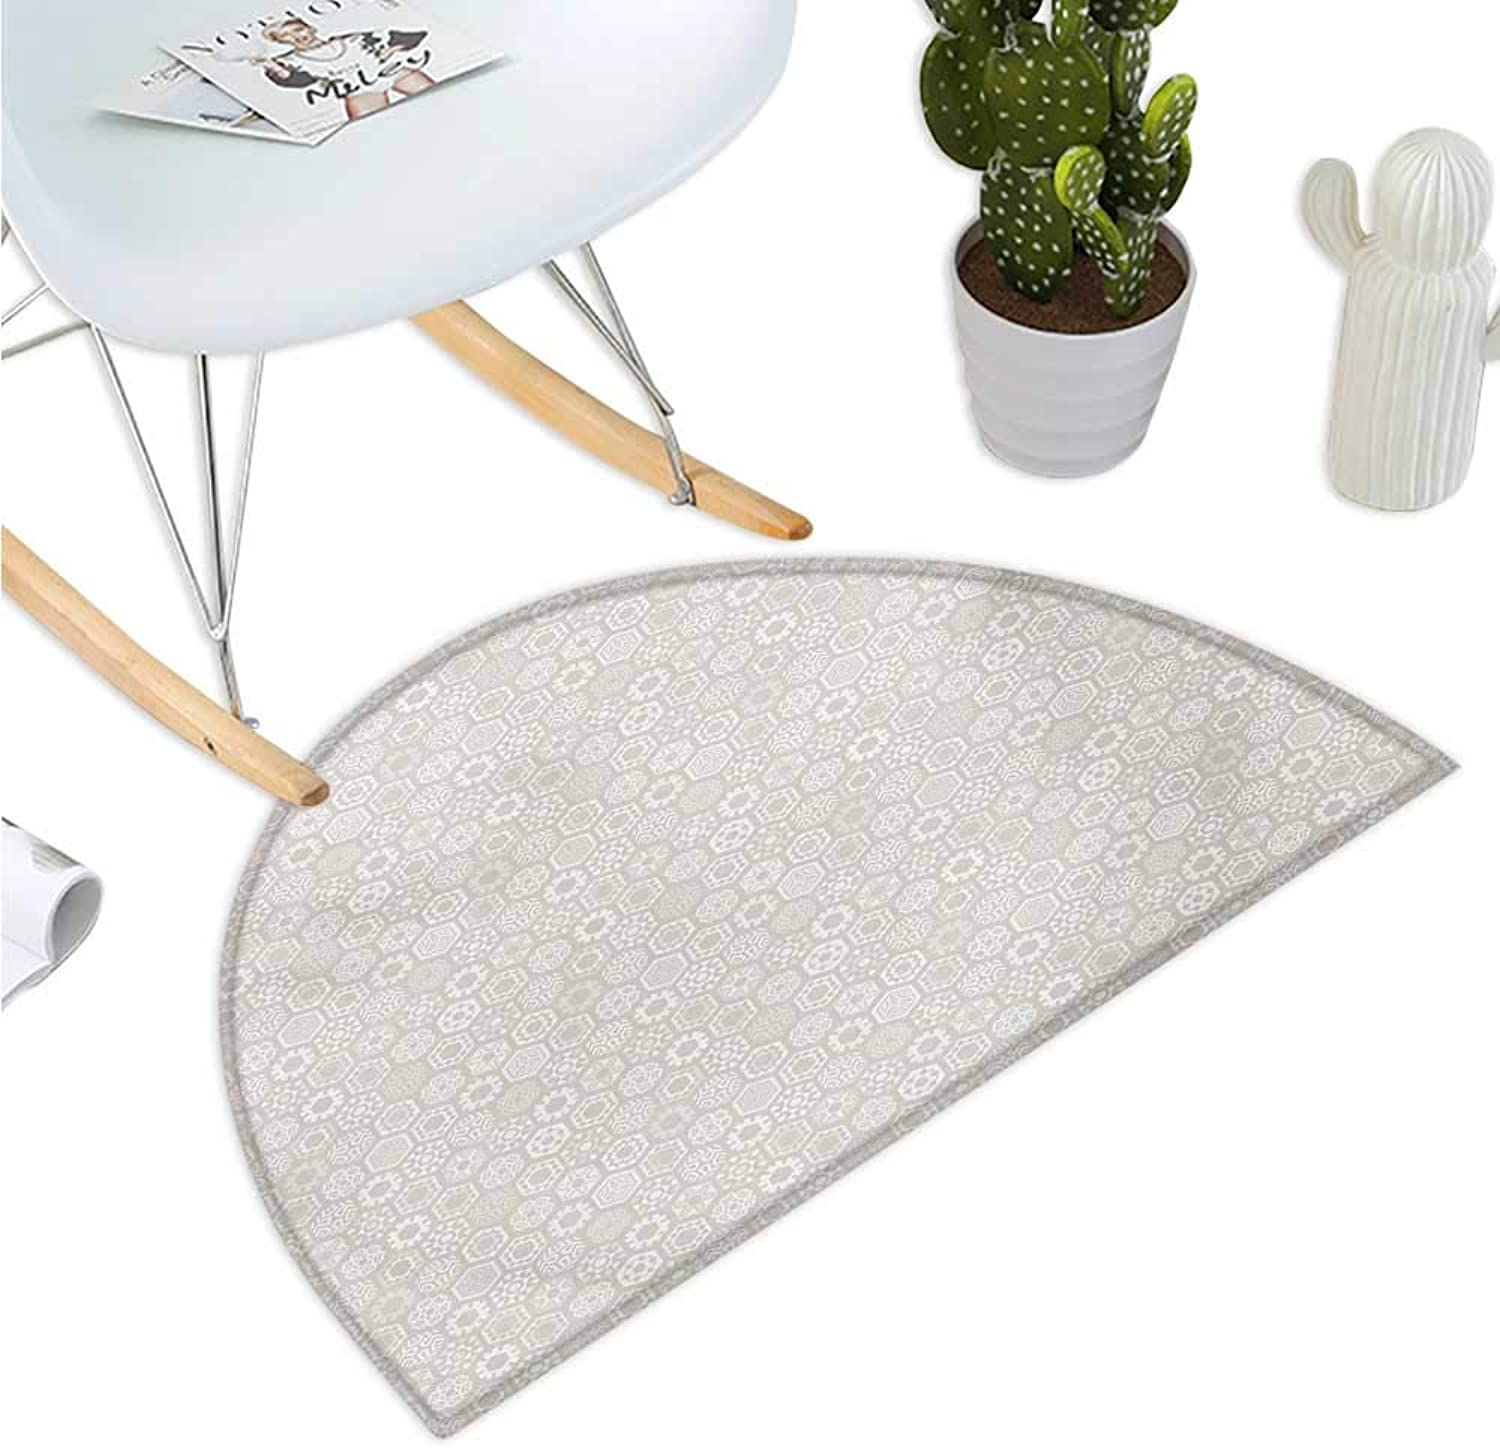 Winter Half Round Door mats Stylized Flakes with Hexagonal Comb Pattern Mosaic Tile Style Year Celebration Entry Door Mat H 51.1  xD 76.7  Beige White